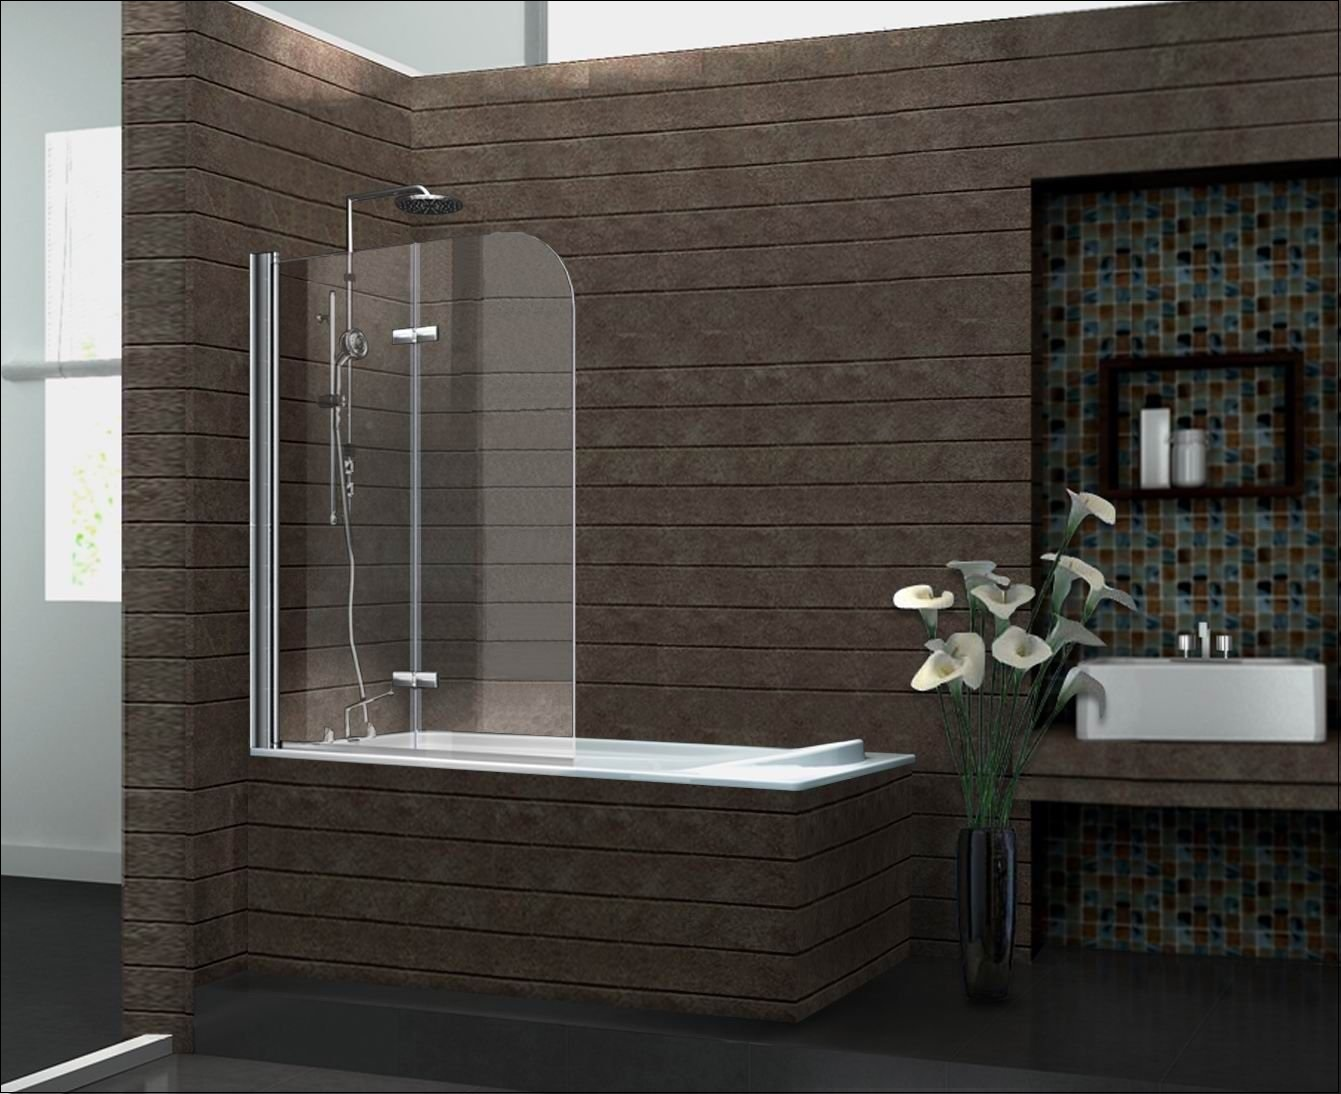 badewanne mit dusche test testsieger. Black Bedroom Furniture Sets. Home Design Ideas